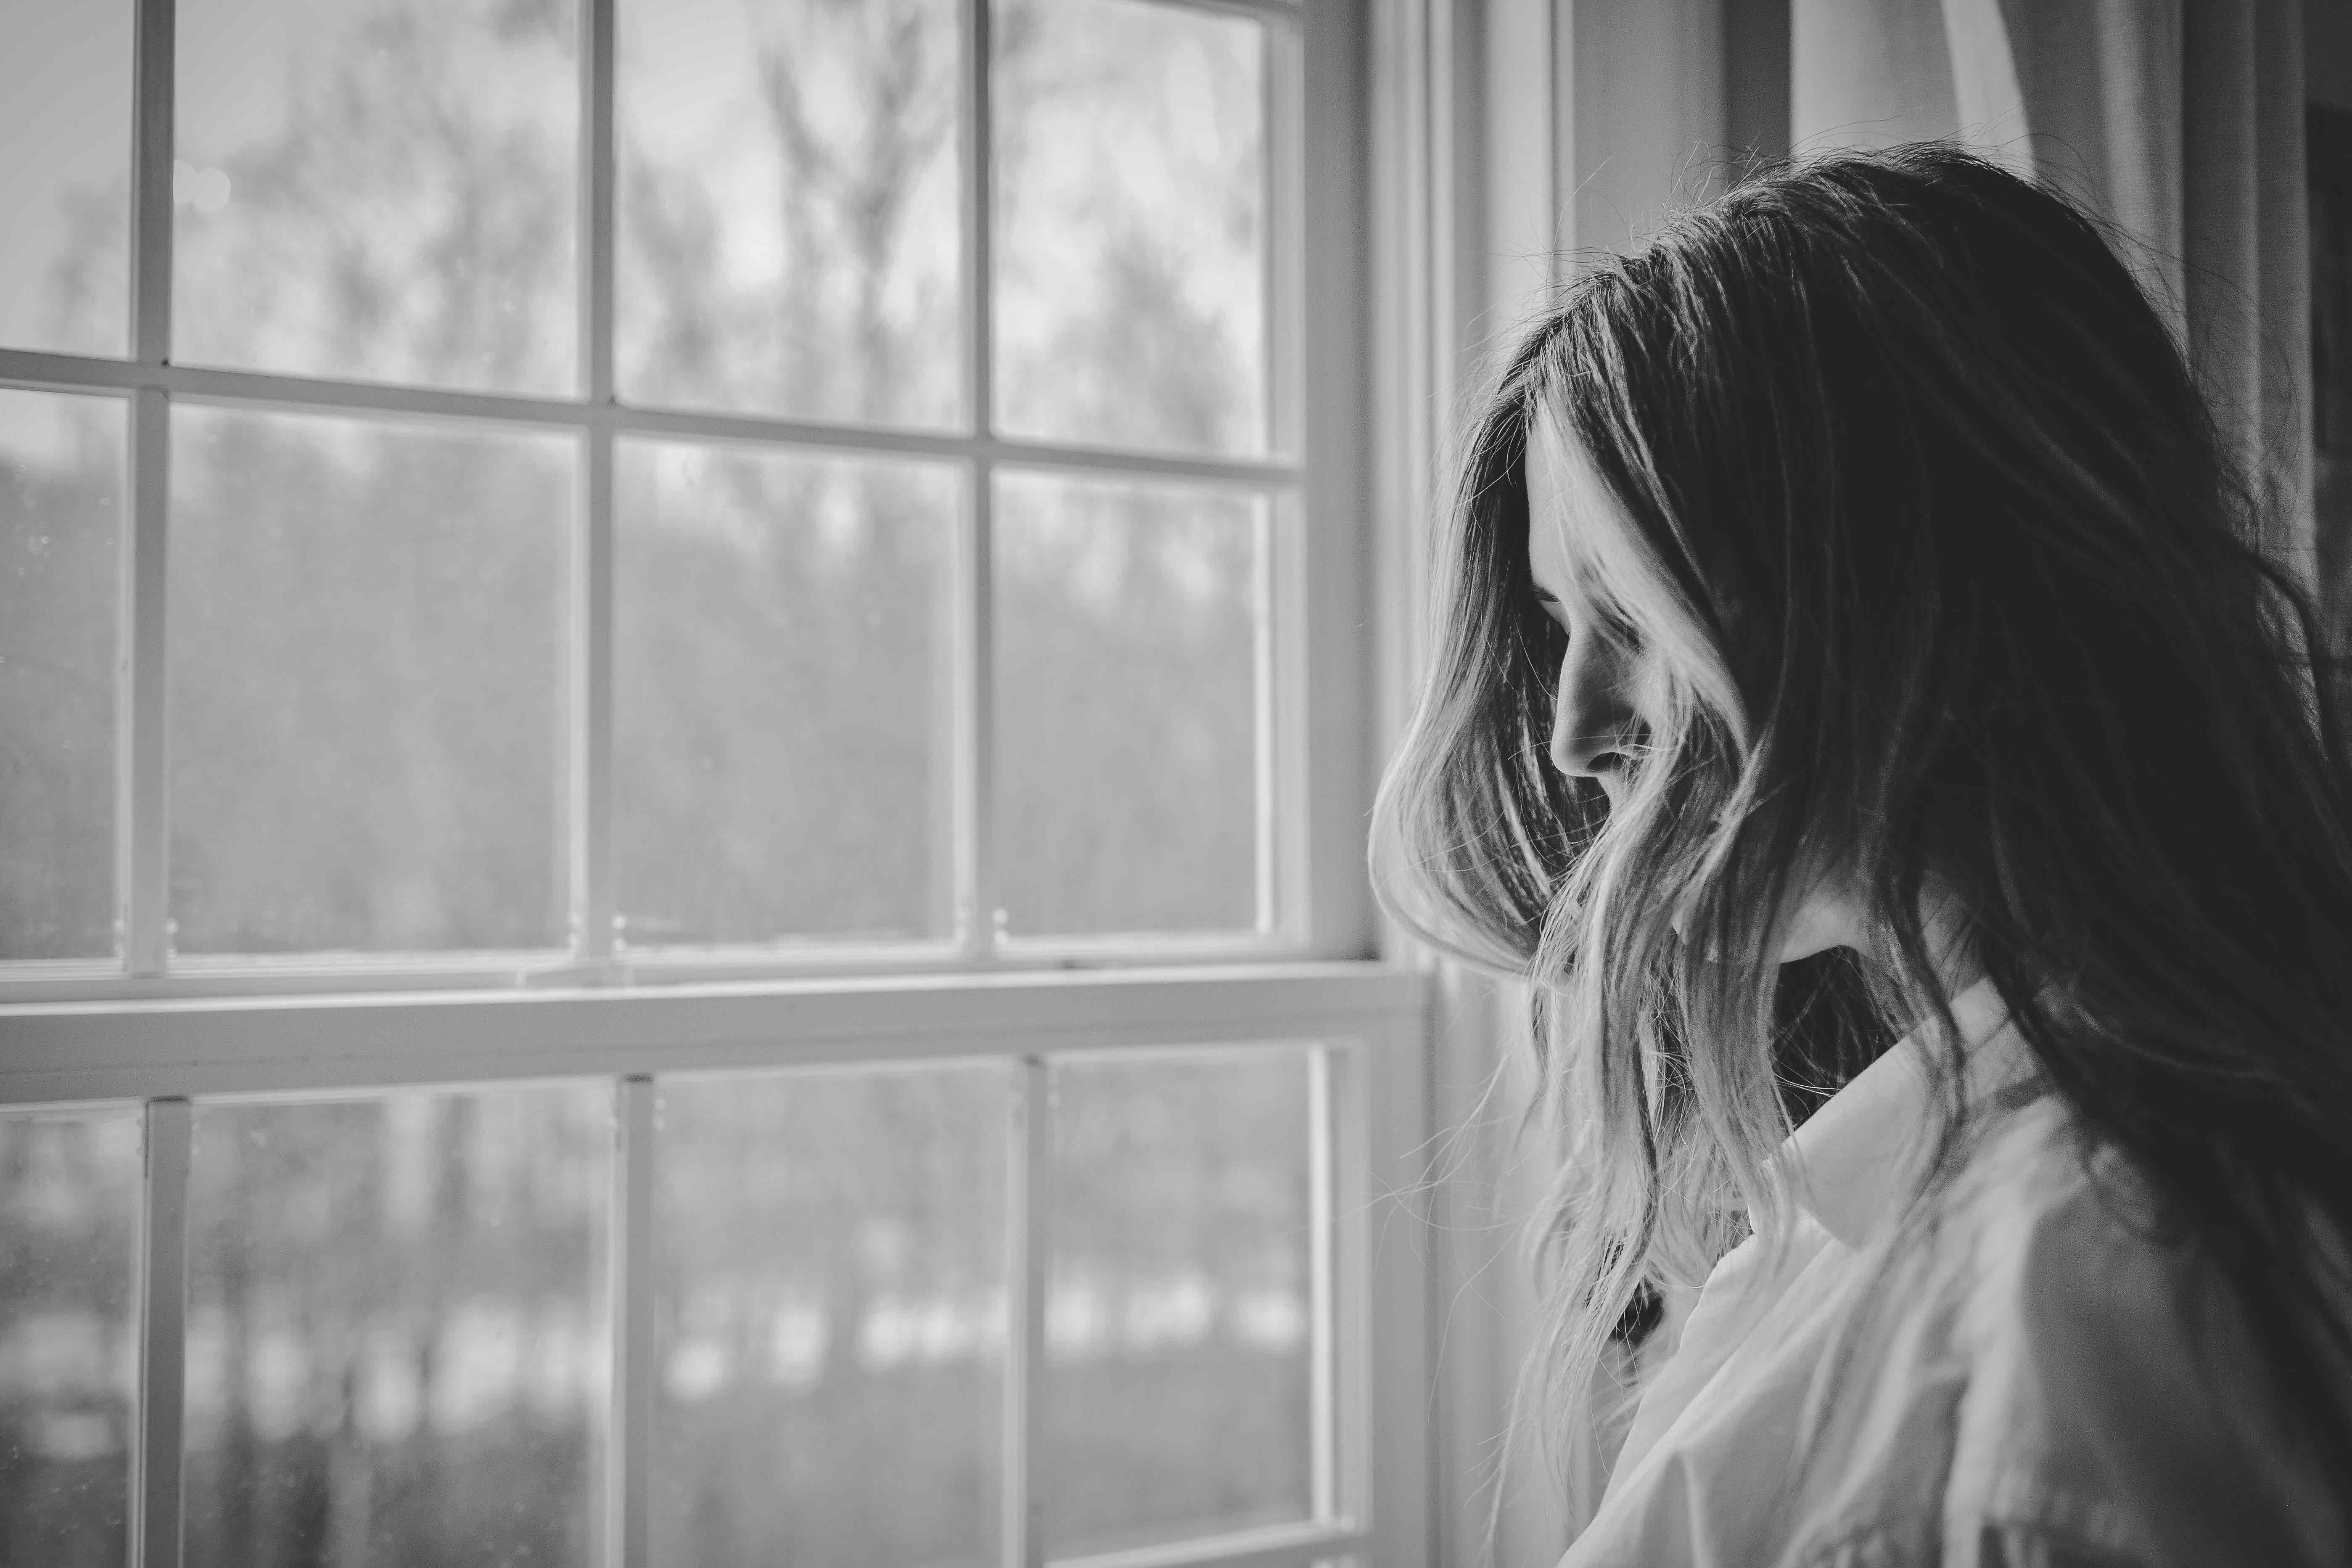 Photo of woman looking out of a window, Photo by Danielle MacInnes on Unsplash